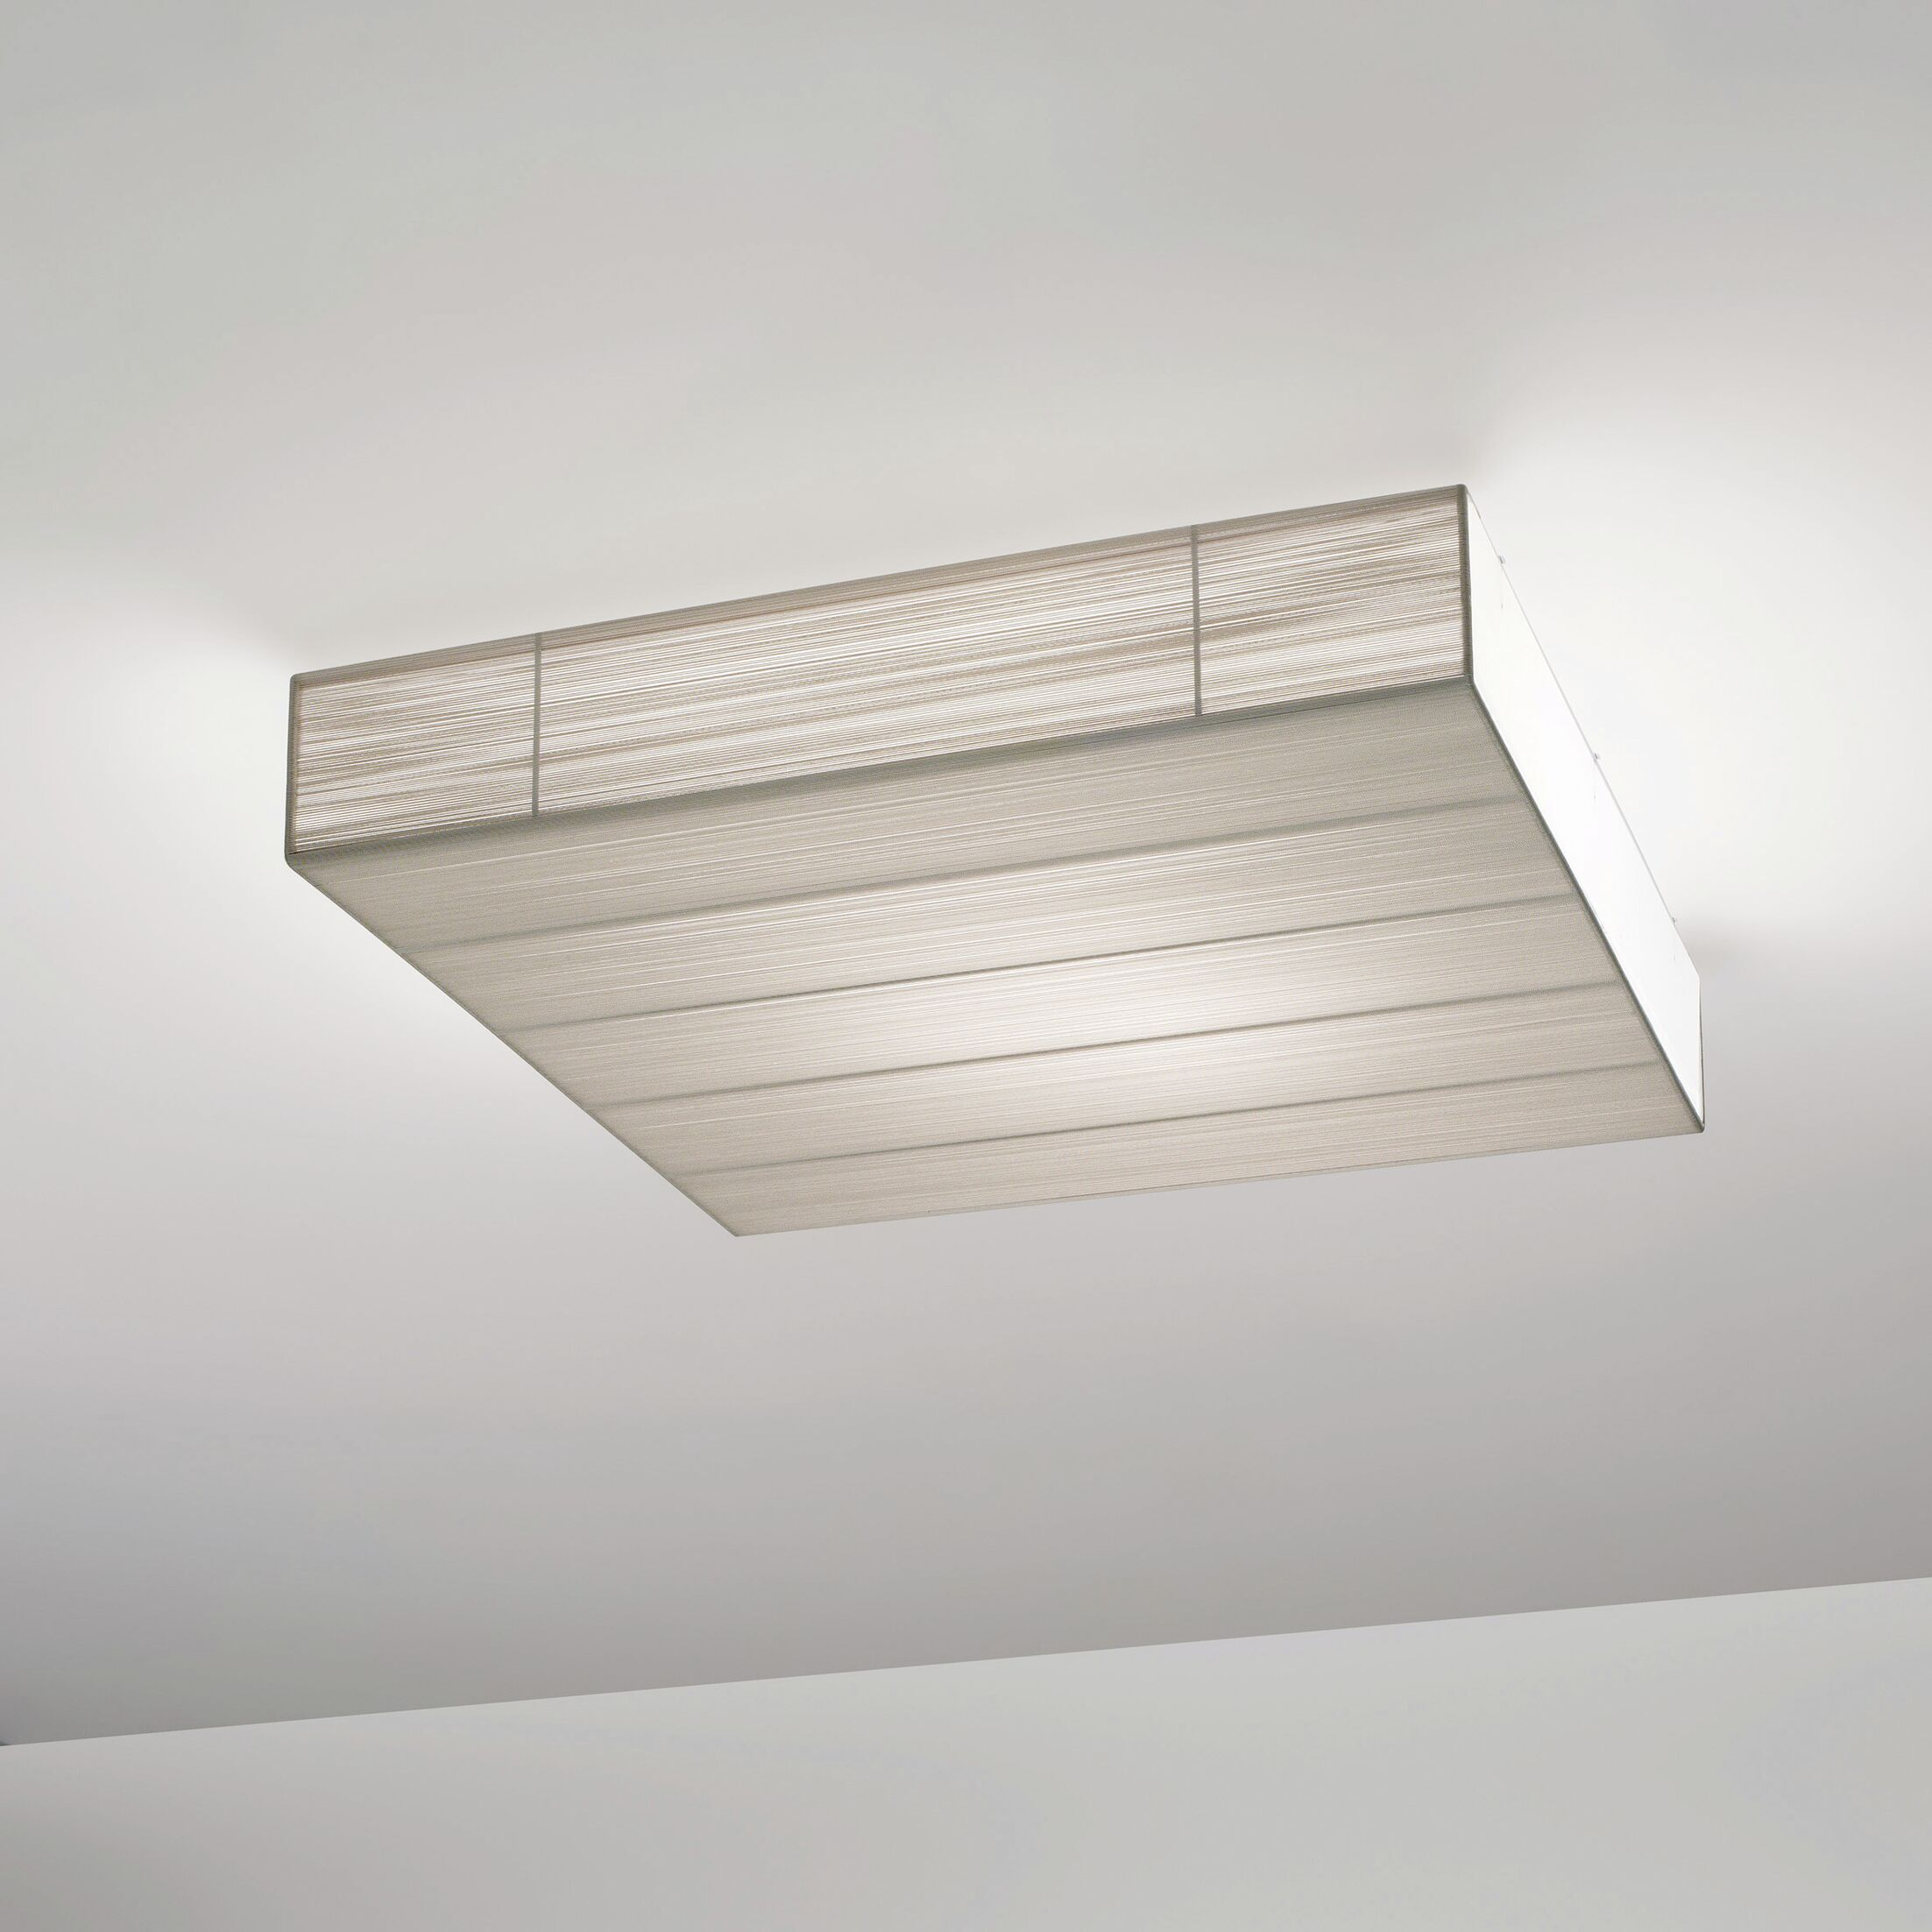 Clavius 90 Ceiling Light Flush Mount Bulb Type: Fluorescent, Shade Color: Sand